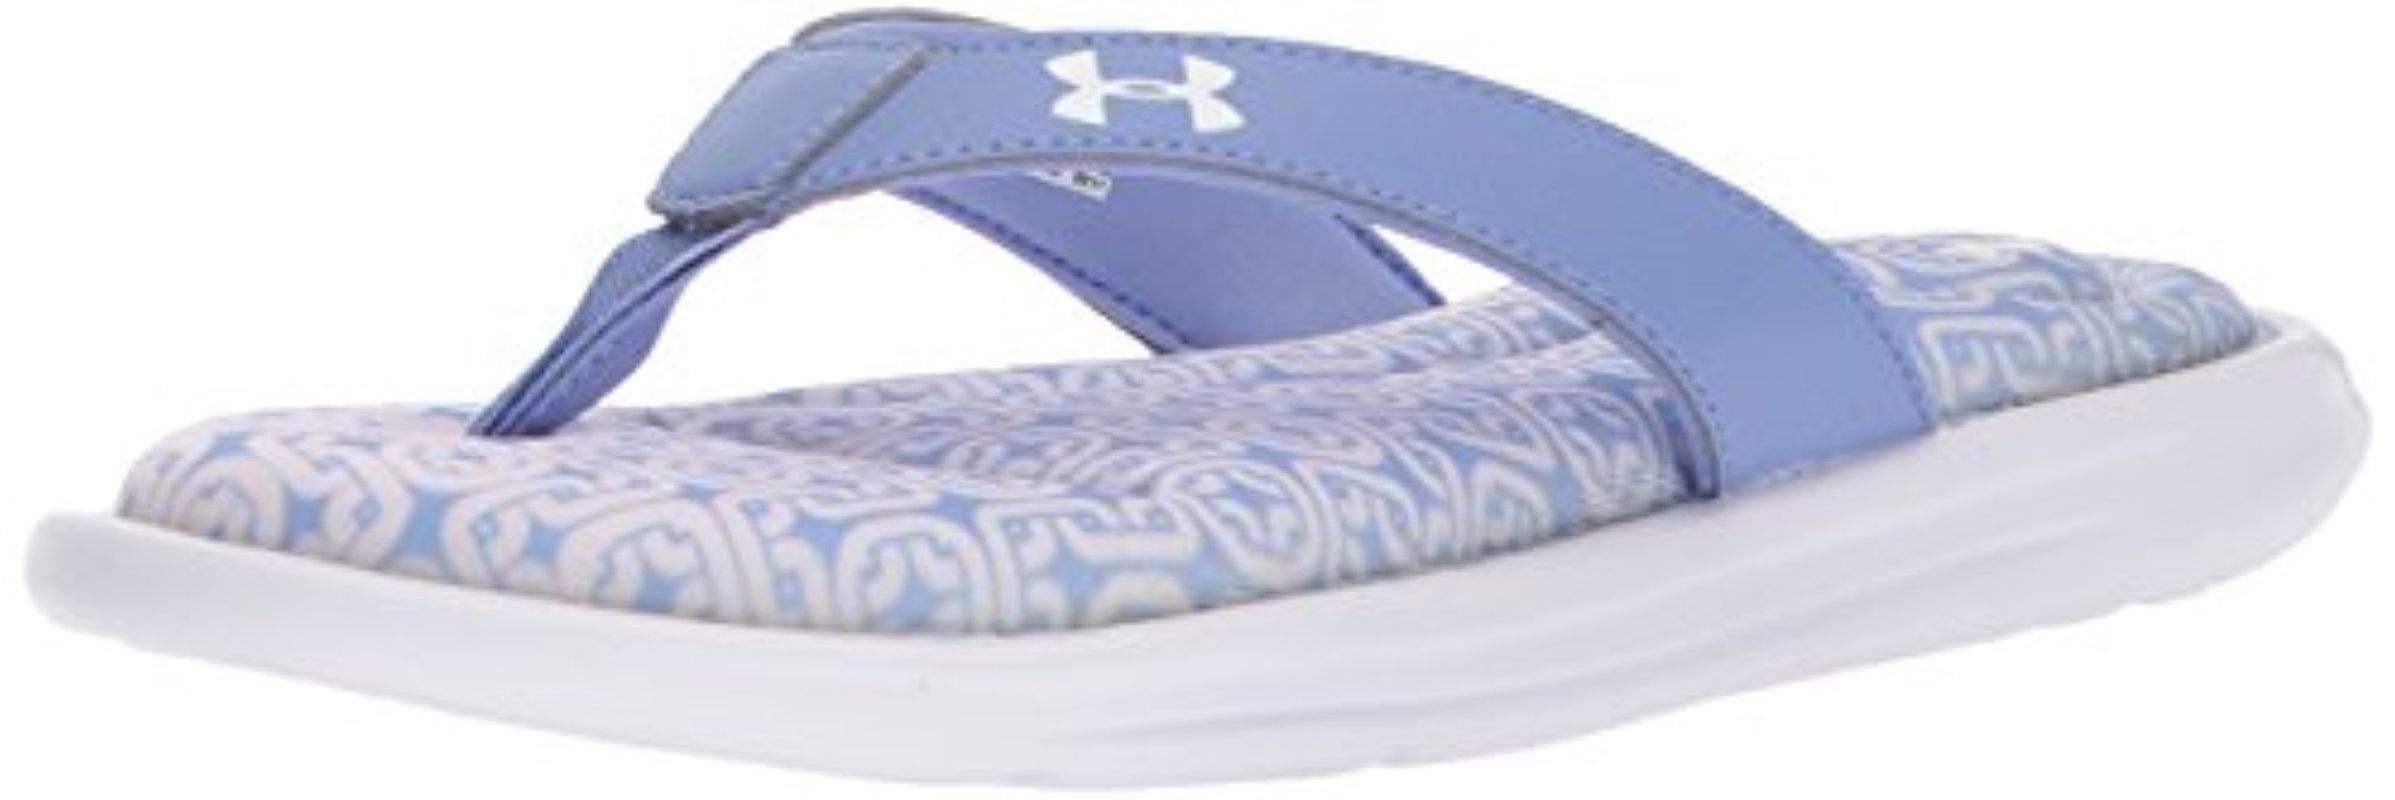 Under Armour Women's Marbella Oval VI Thong Slip-On Sandals RuobvEVcr